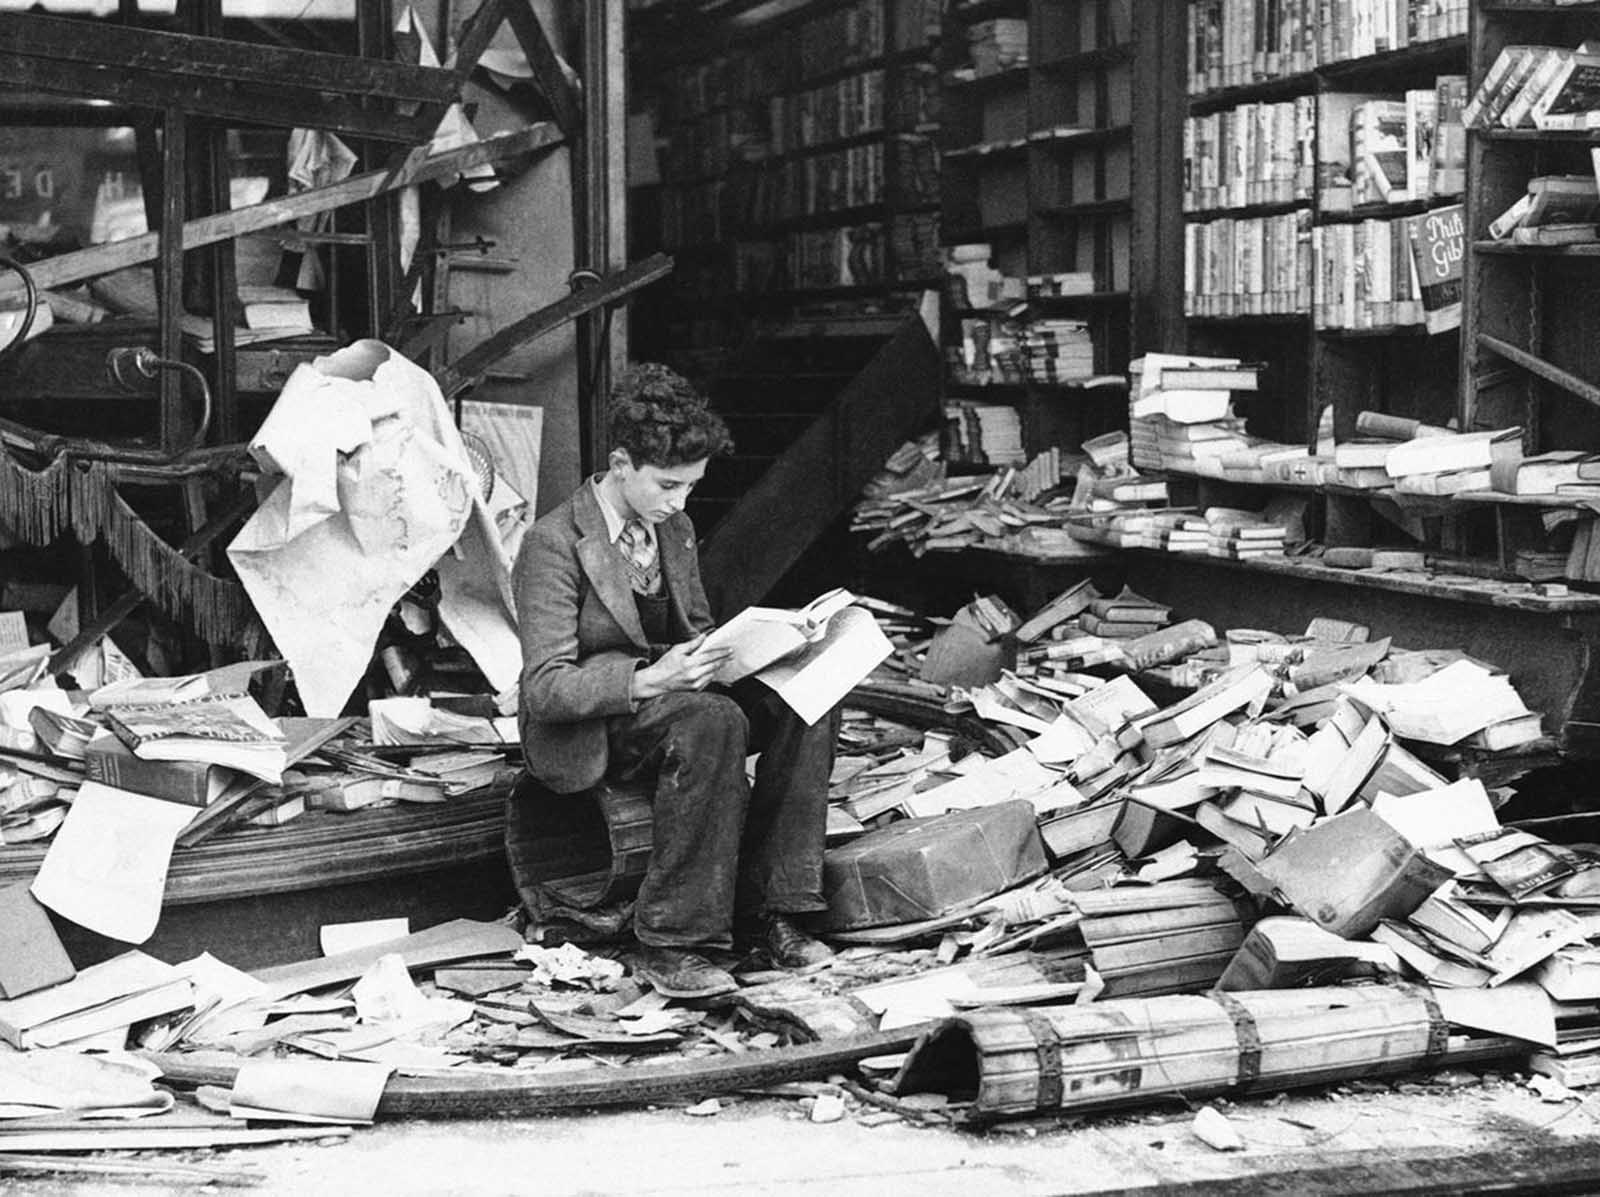 A boy sits amid the ruins of a London bookshop following an air raid on October 8, 1940, reading a book titled